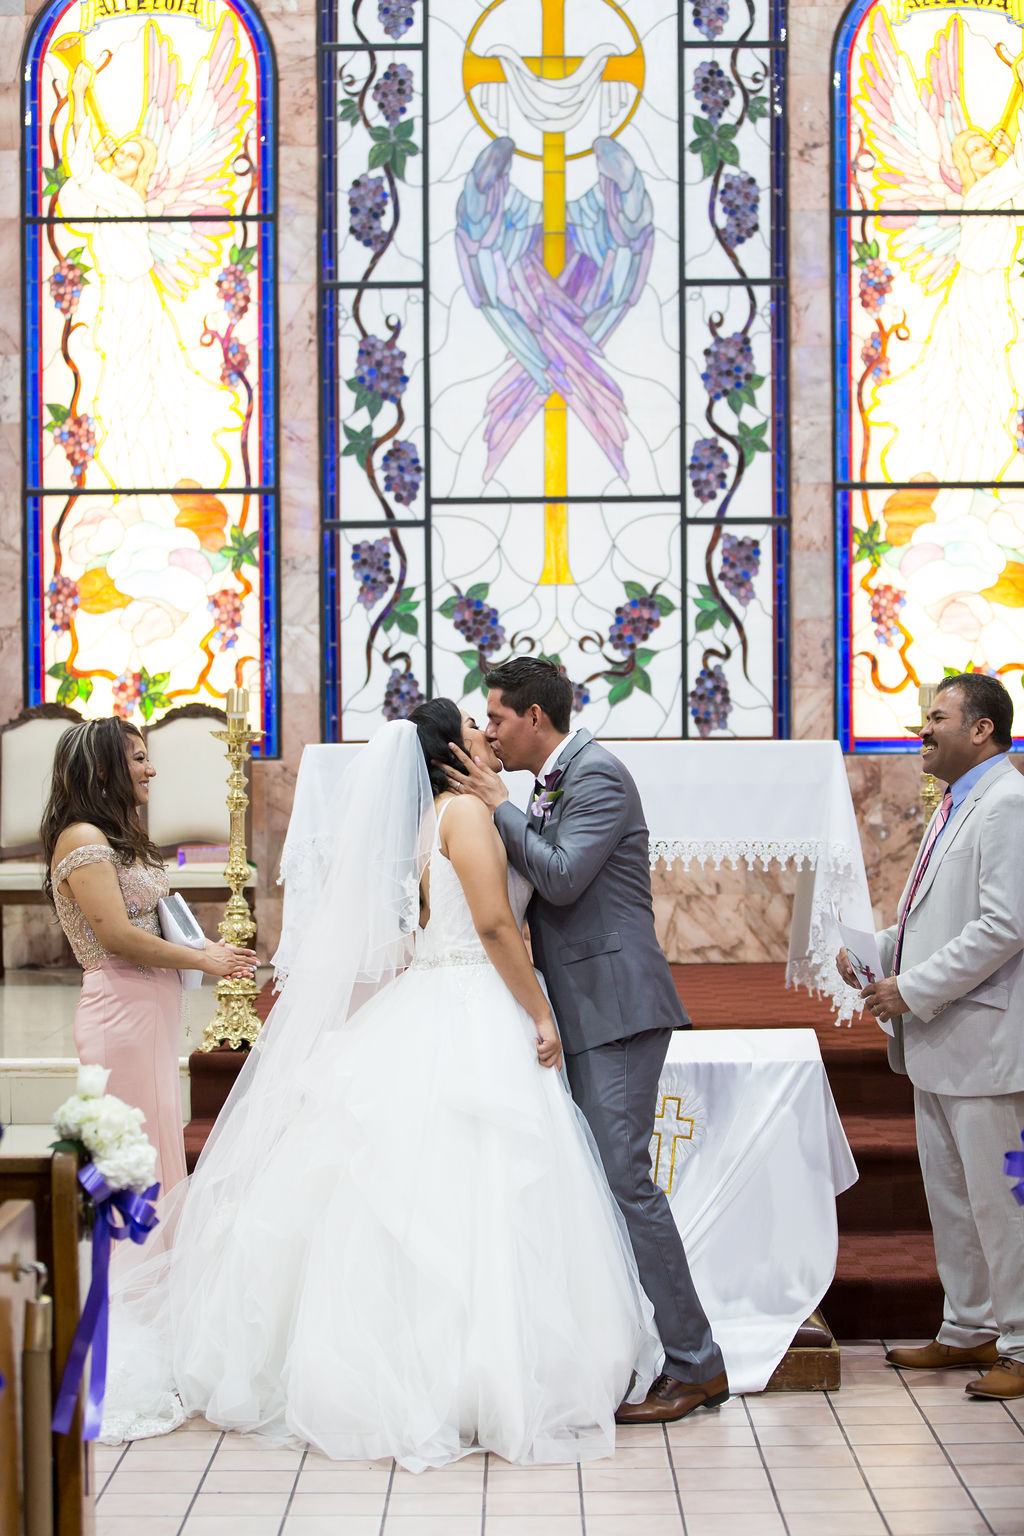 SheratonHotelPomonaWedding-Mabel&Omar(87of390).jpg